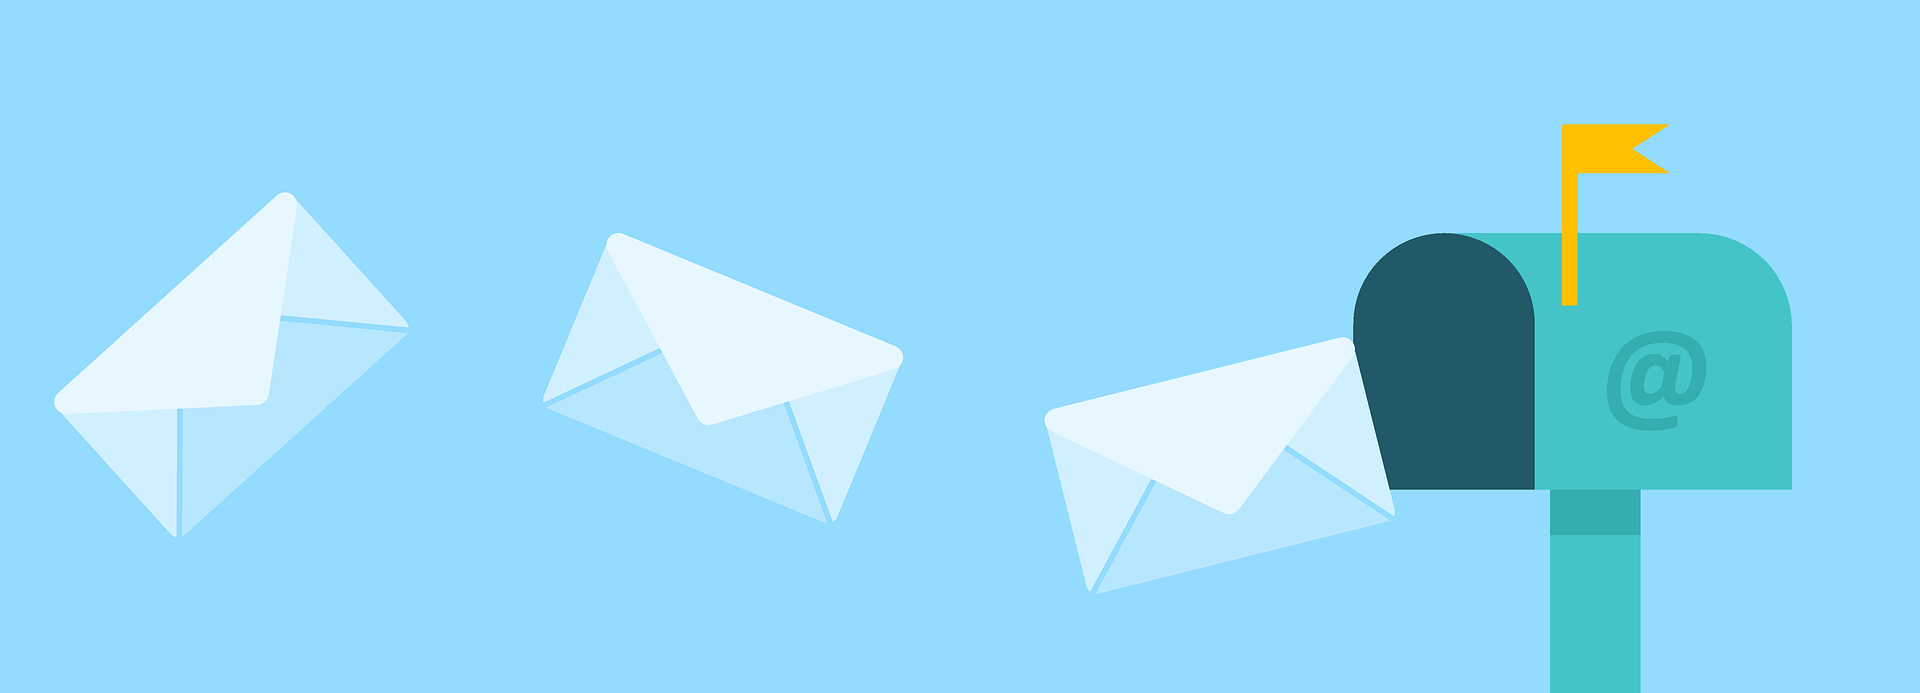 email-marketing-2362038_1920 (1)